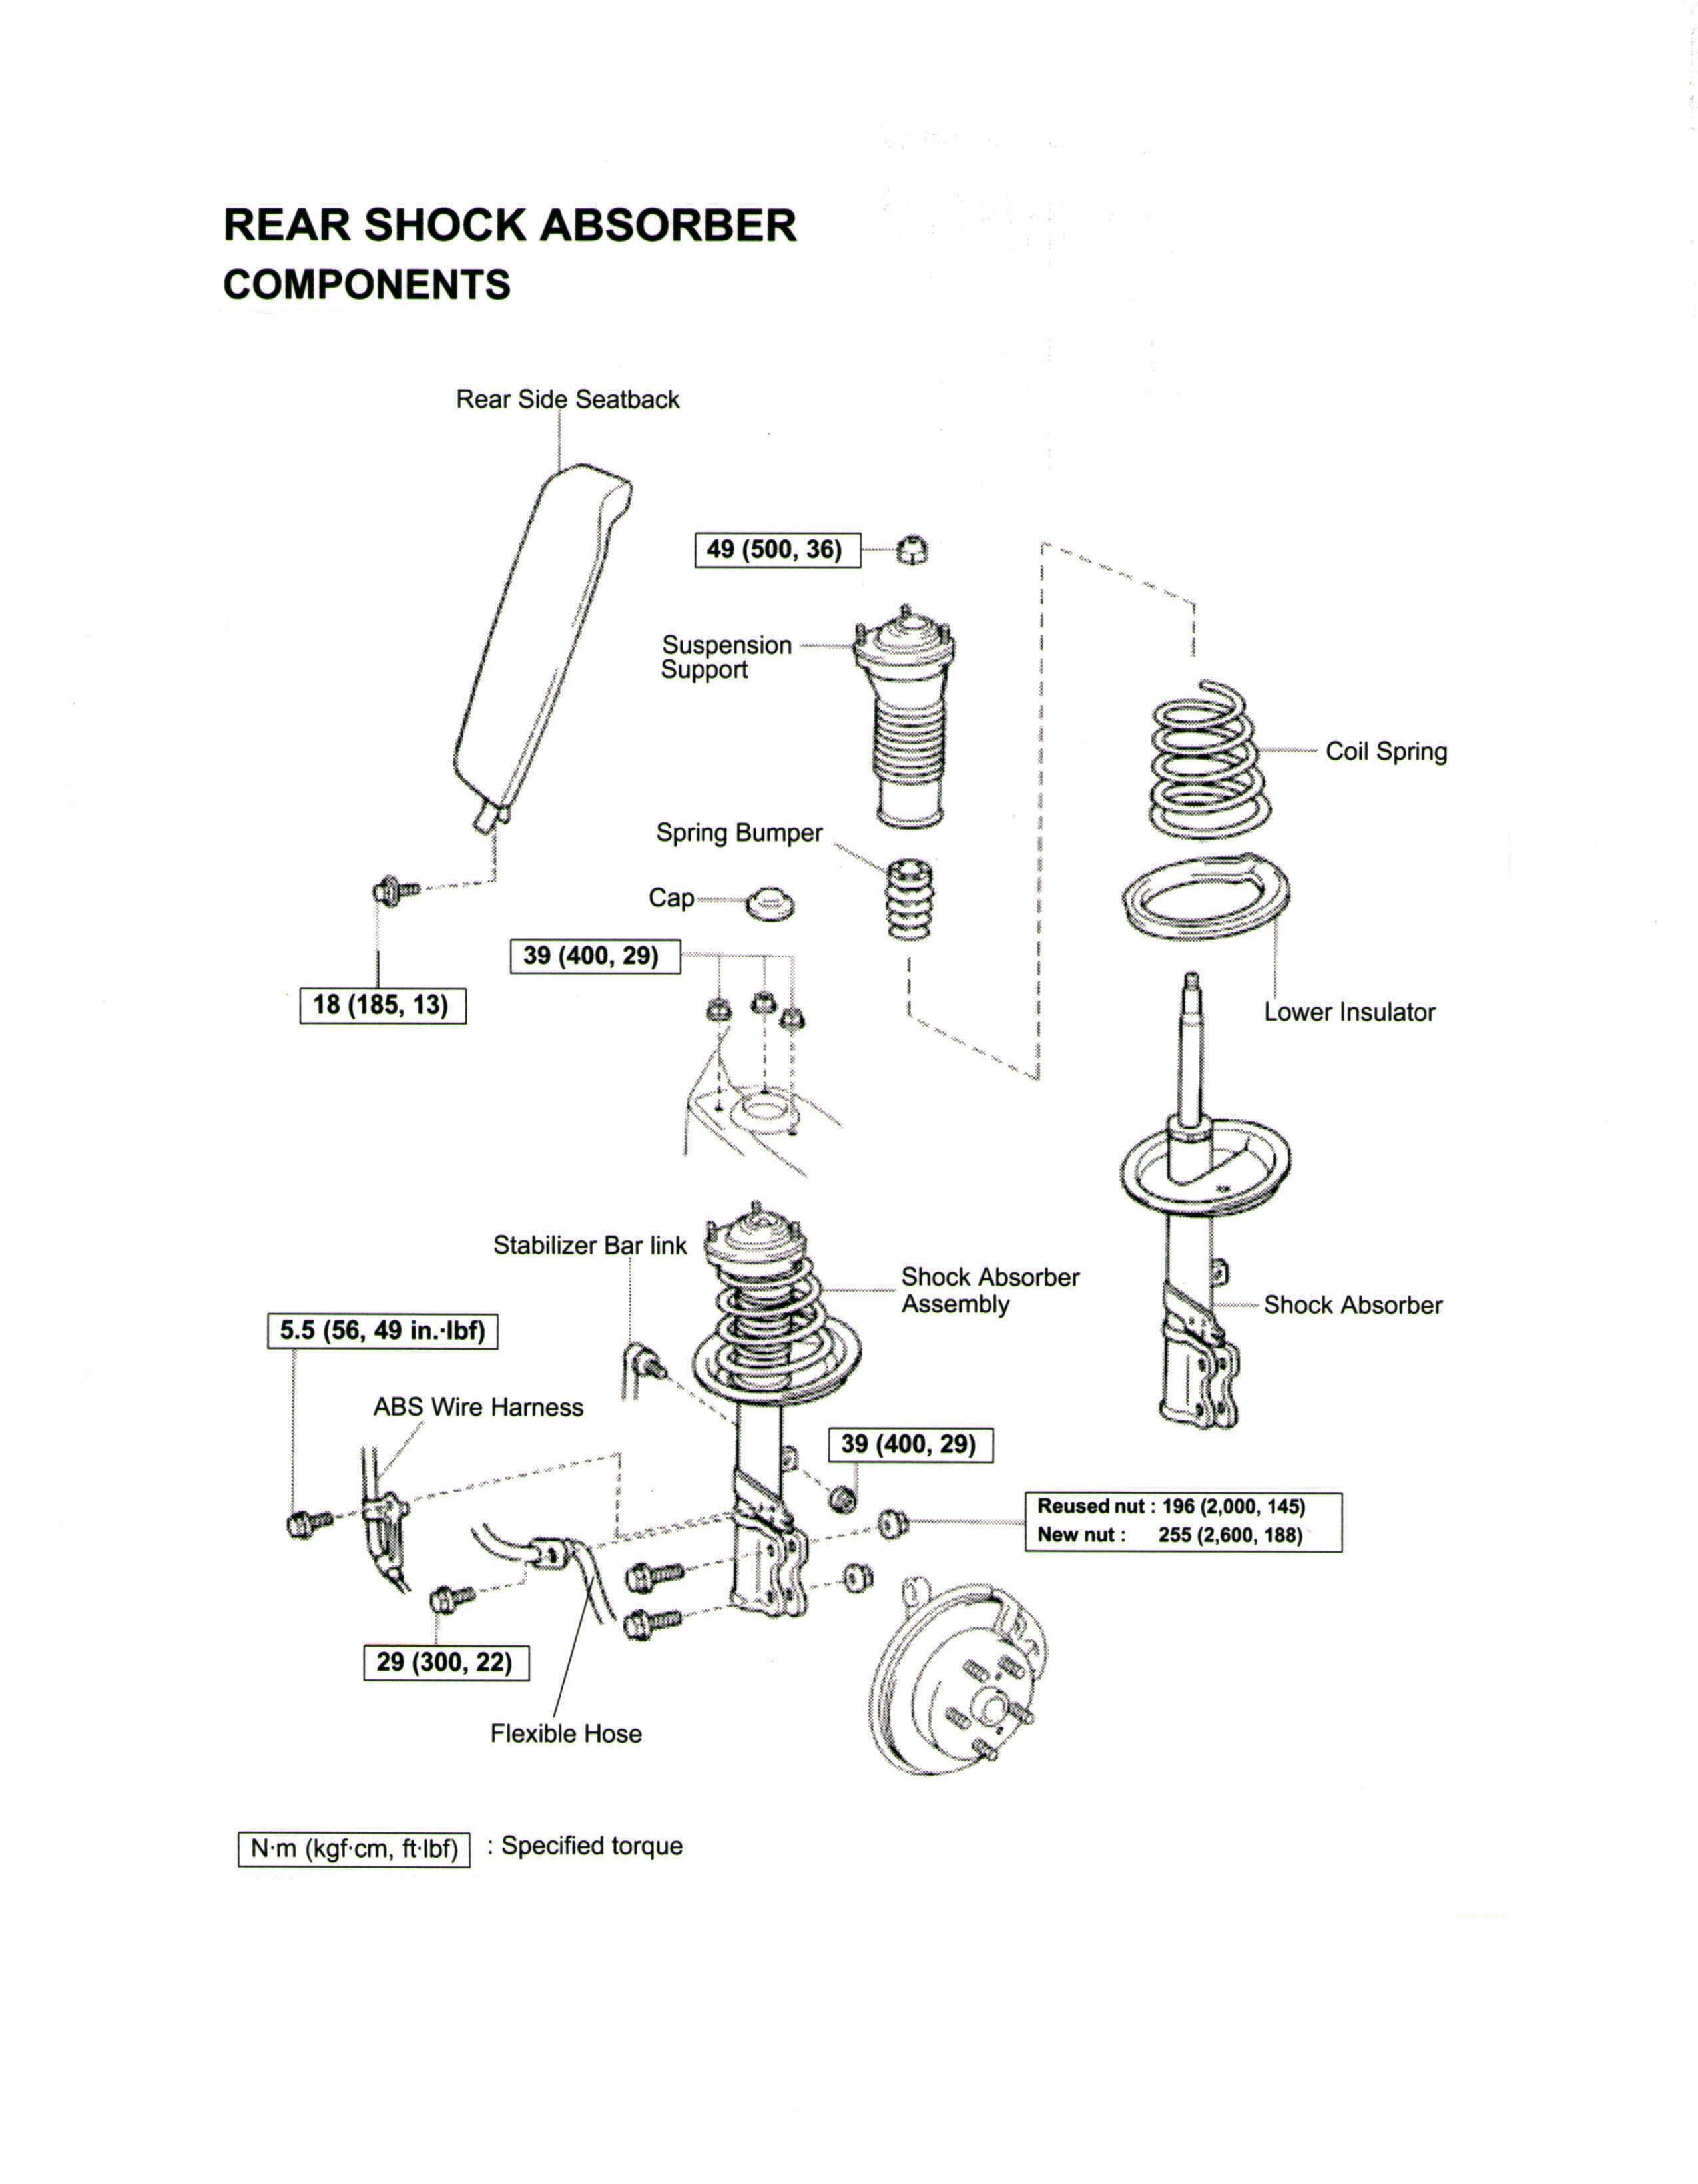 1997 toyota Camry Engine Diagram Replacing the Rear Strut and or Coil Spring On A toyota Camry Of 1997 toyota Camry Engine Diagram